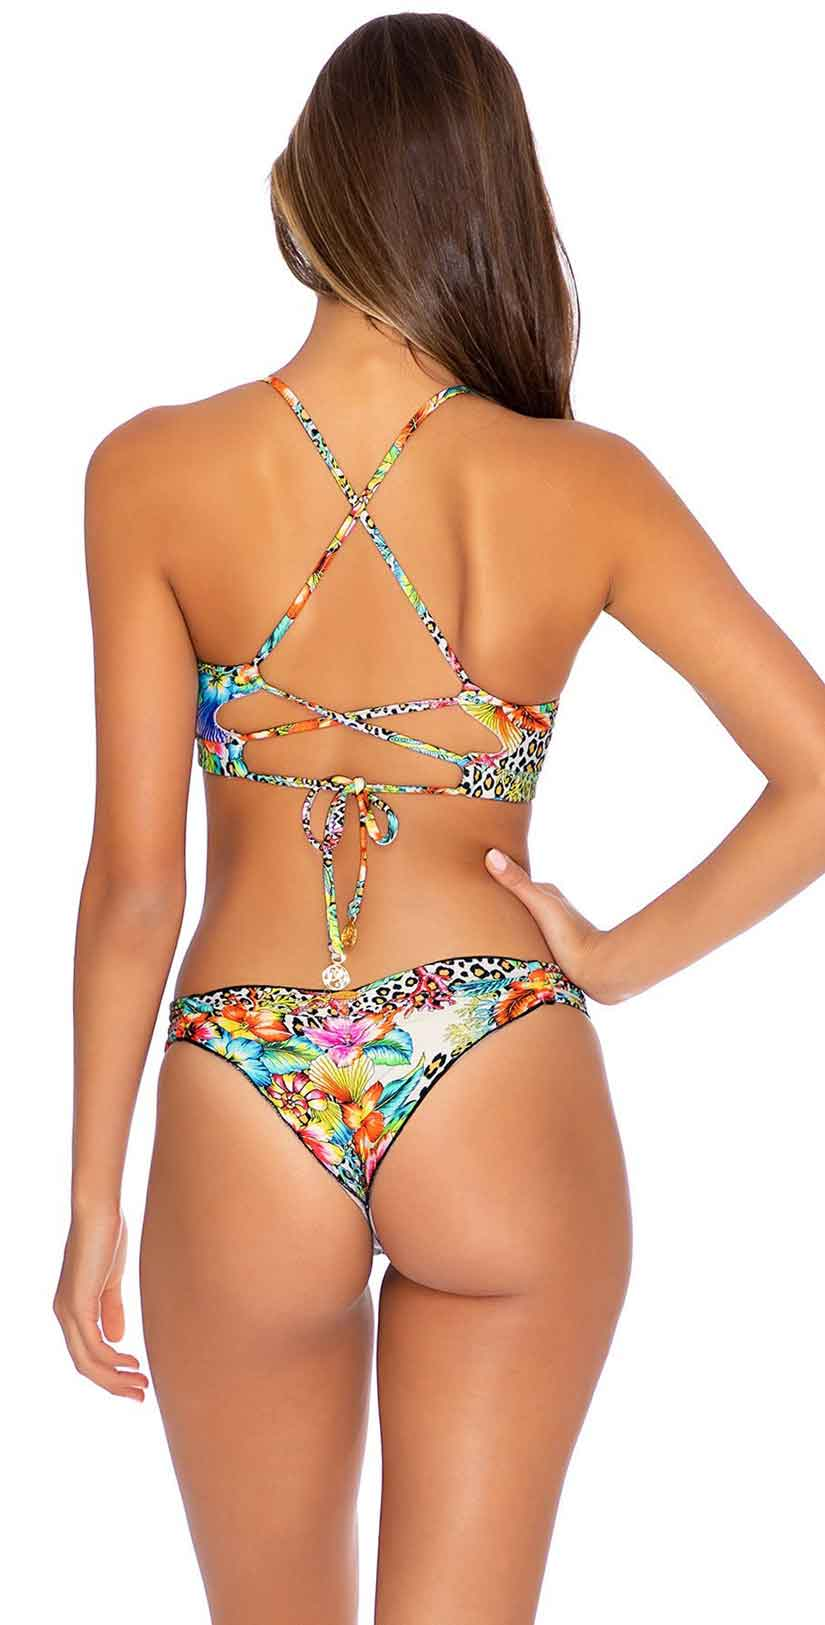 Luli Fama Luli's Jungle Underwire Top in Multicolor: